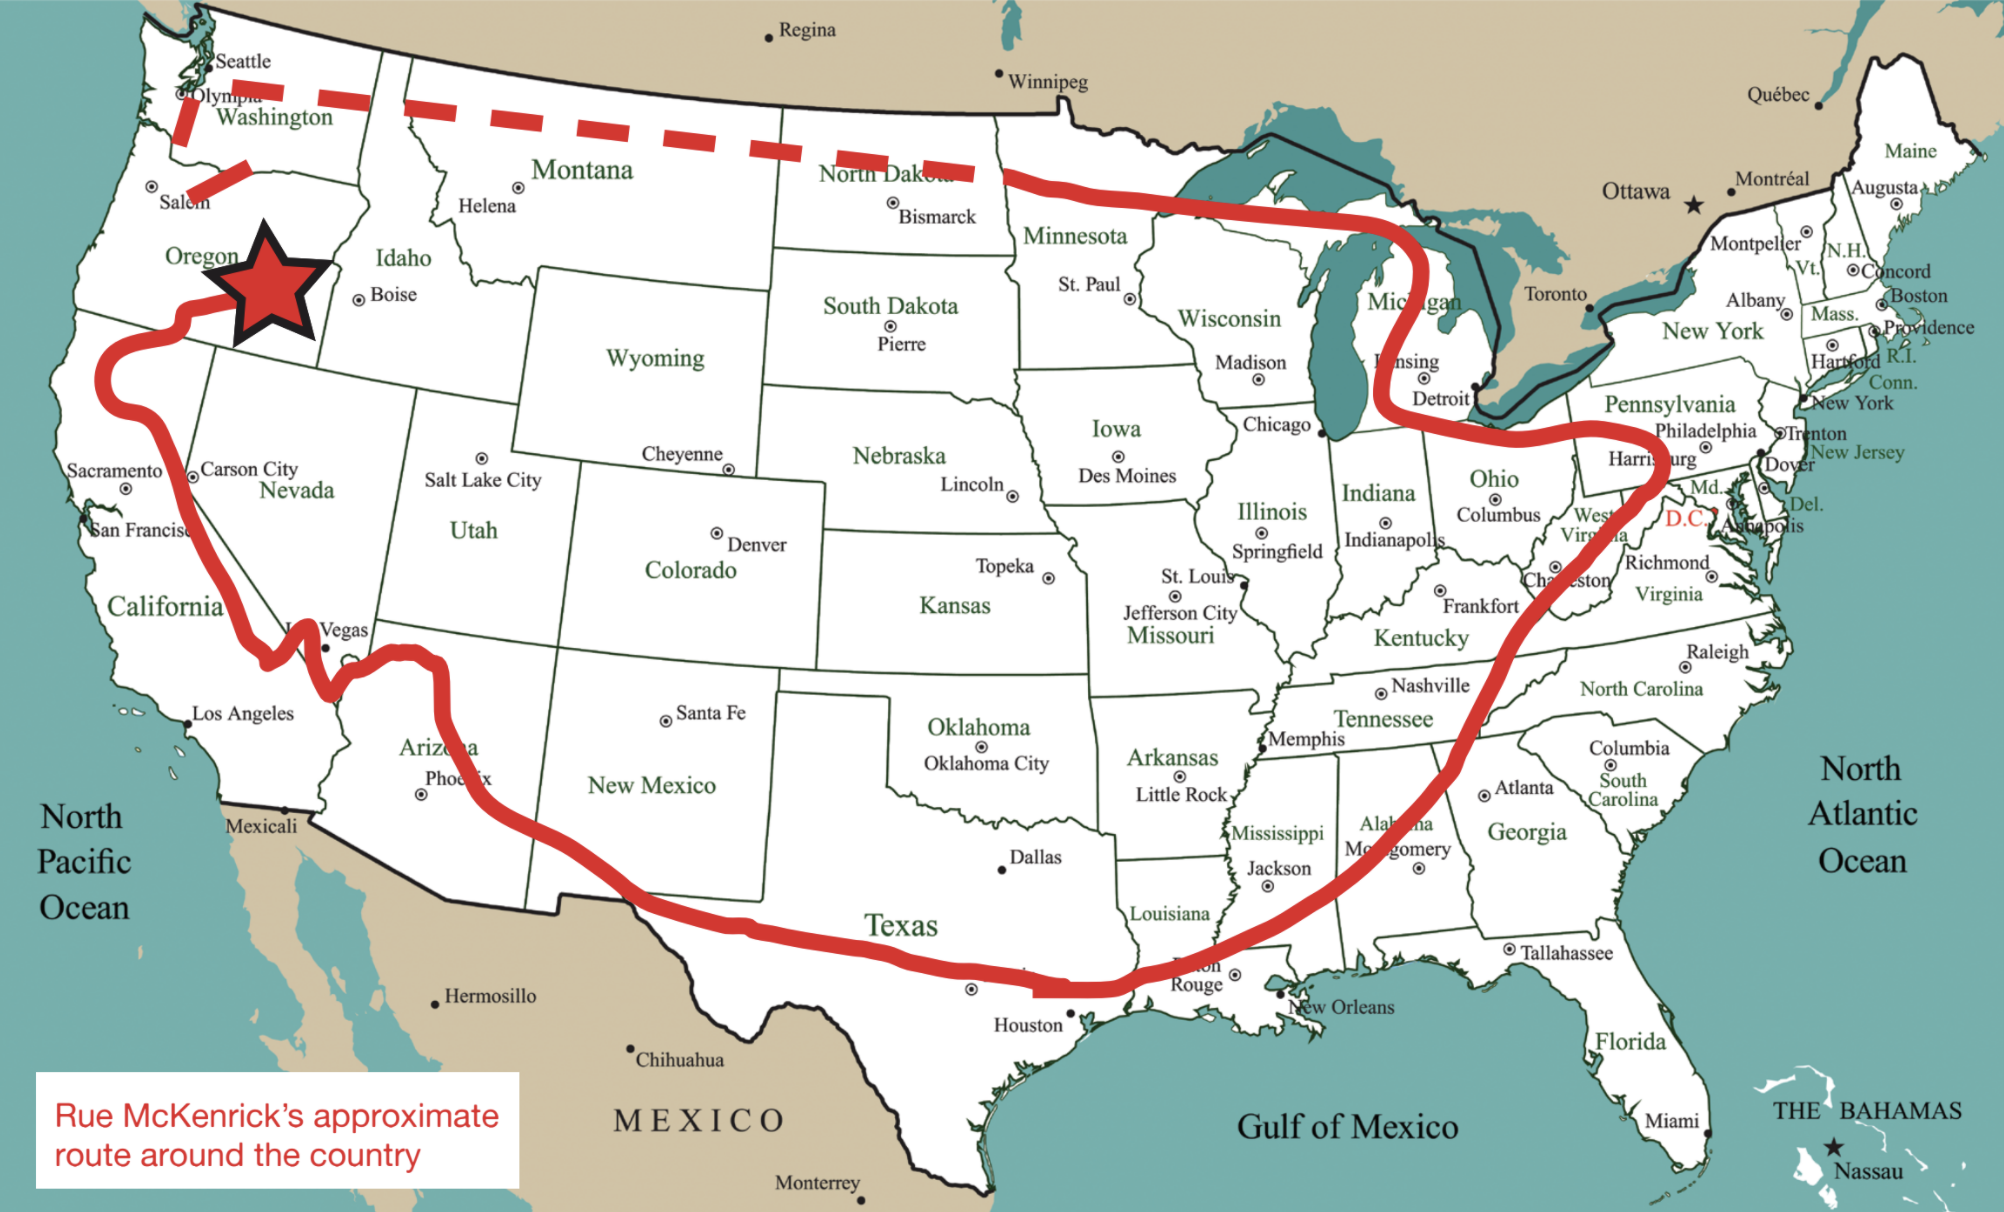 Map of the United States showing the planned American Perimeter Trail